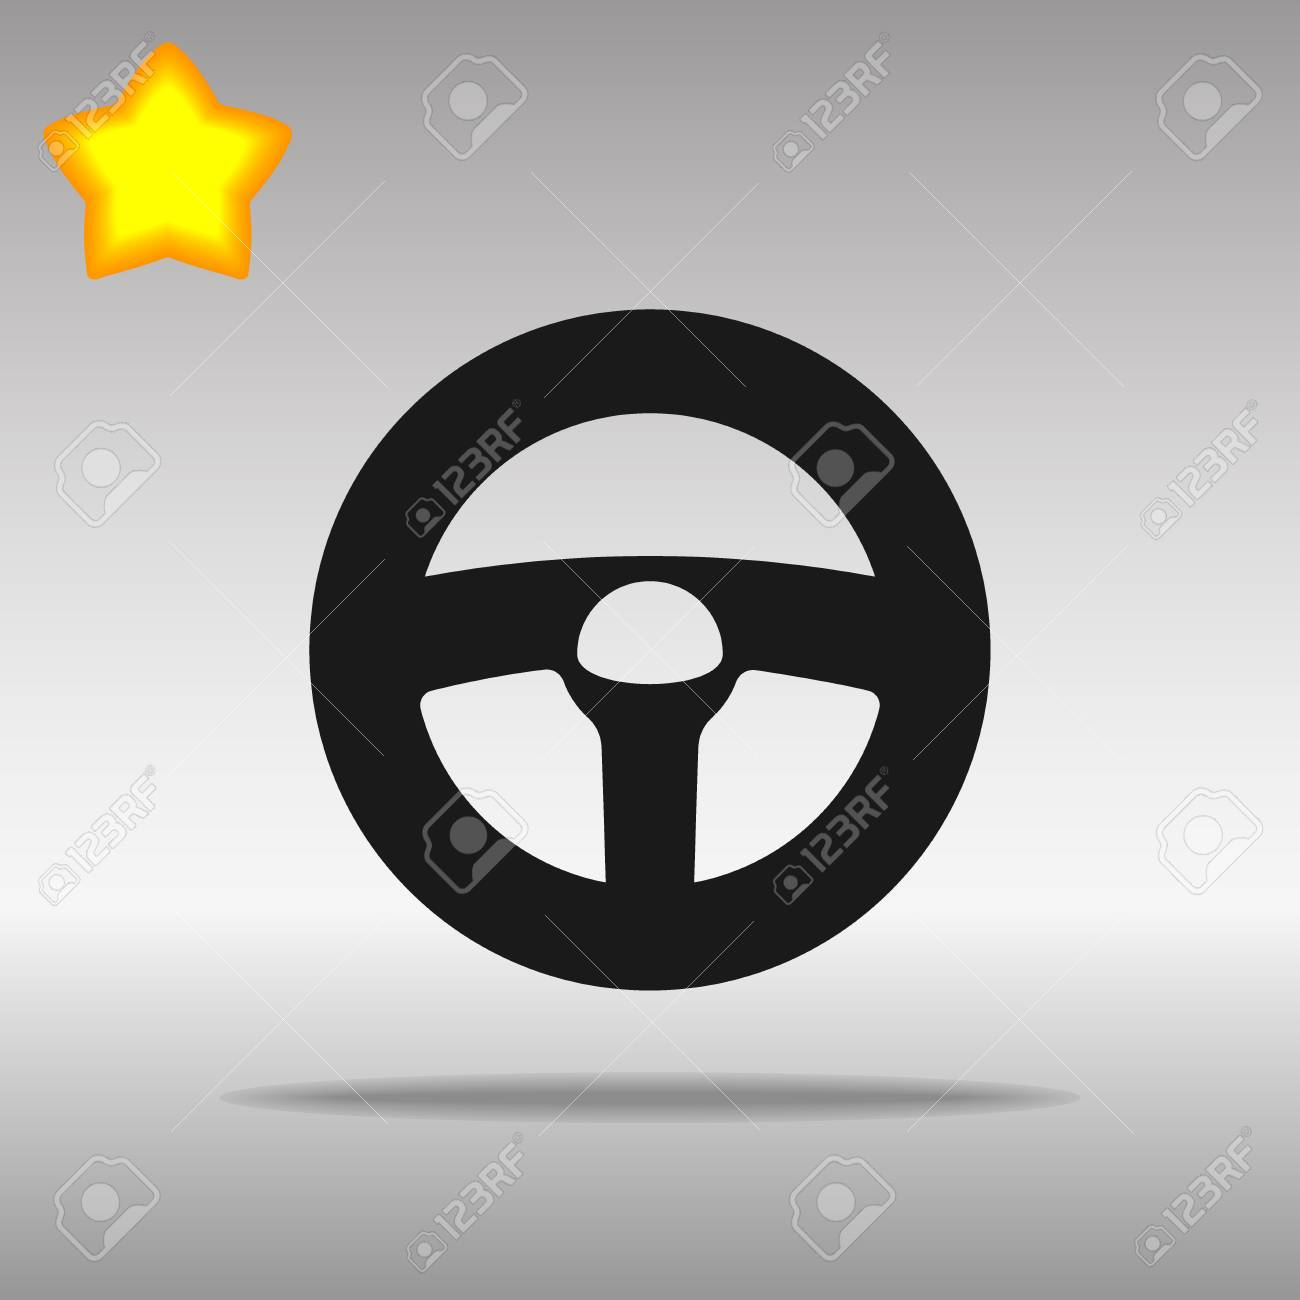 black steering wheel Icon button logo symbol concept high quality on the gray background - 82176413